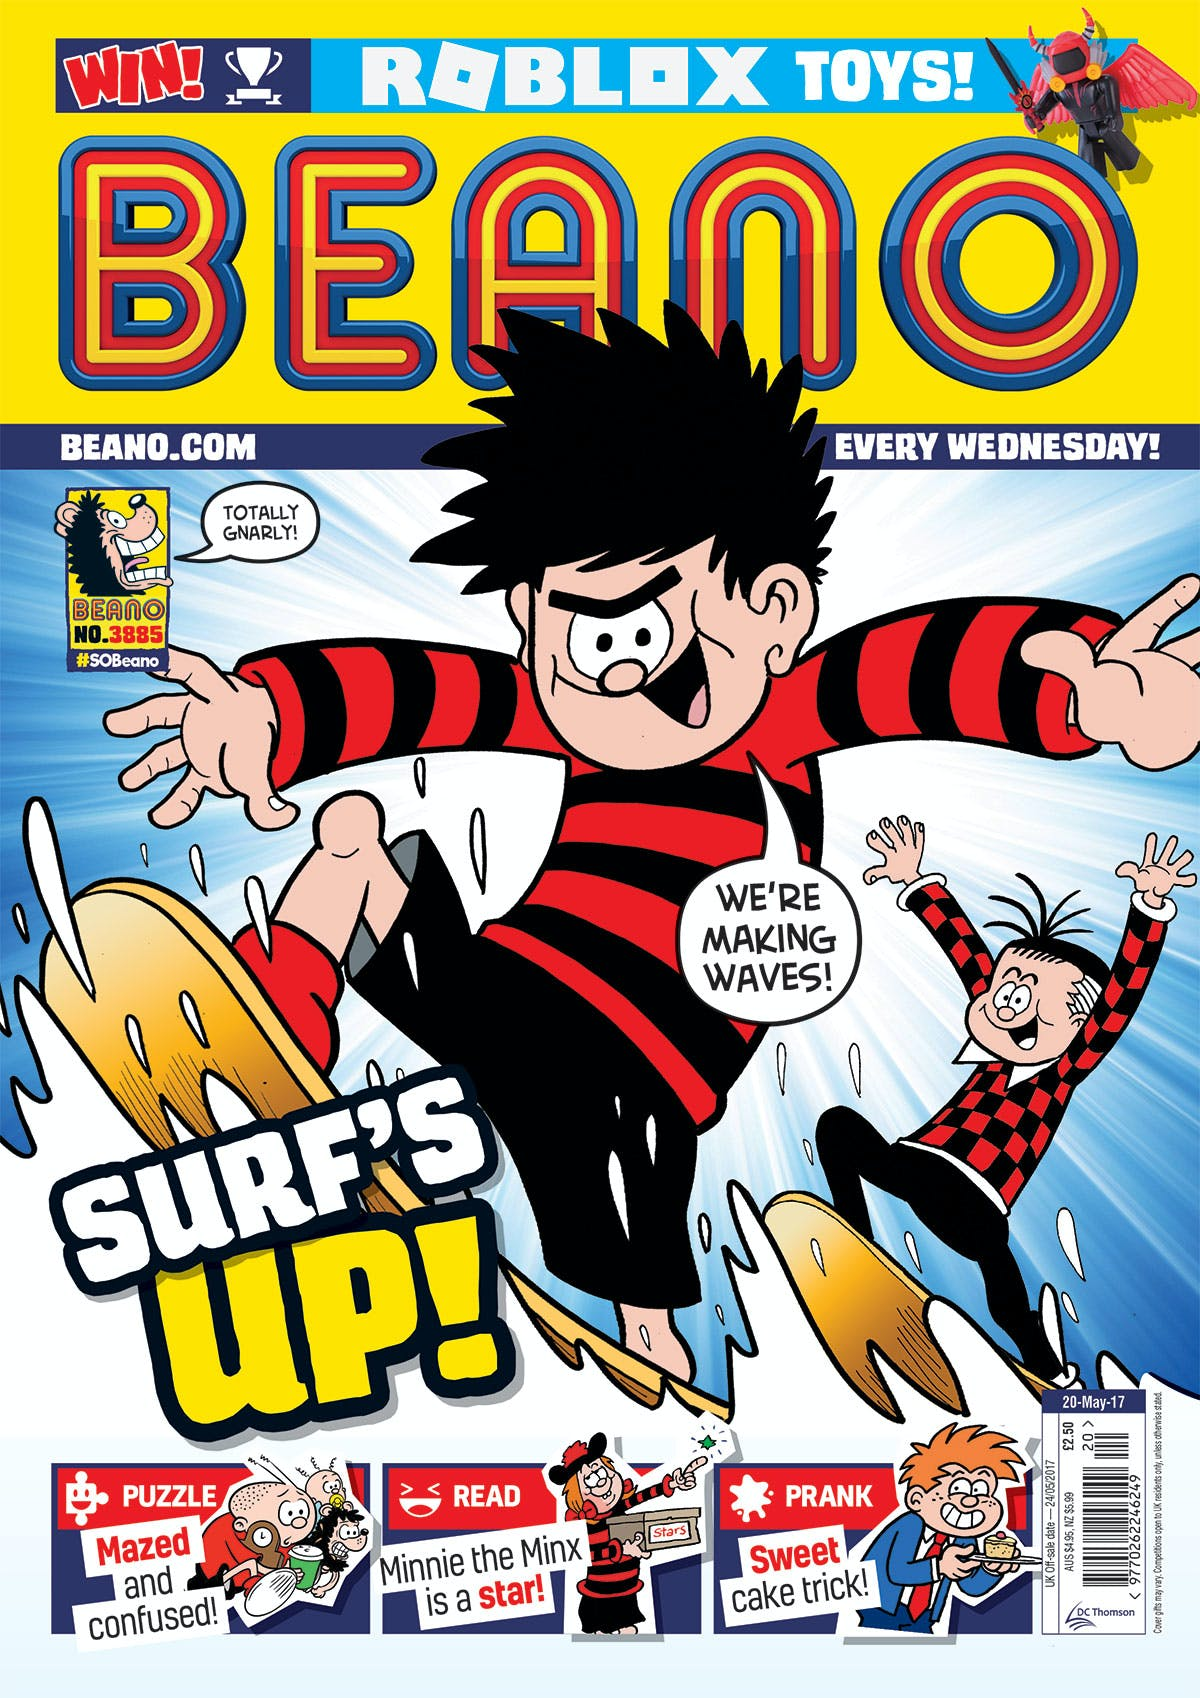 Beano 20 May 2017 Dennis the Menace surfing